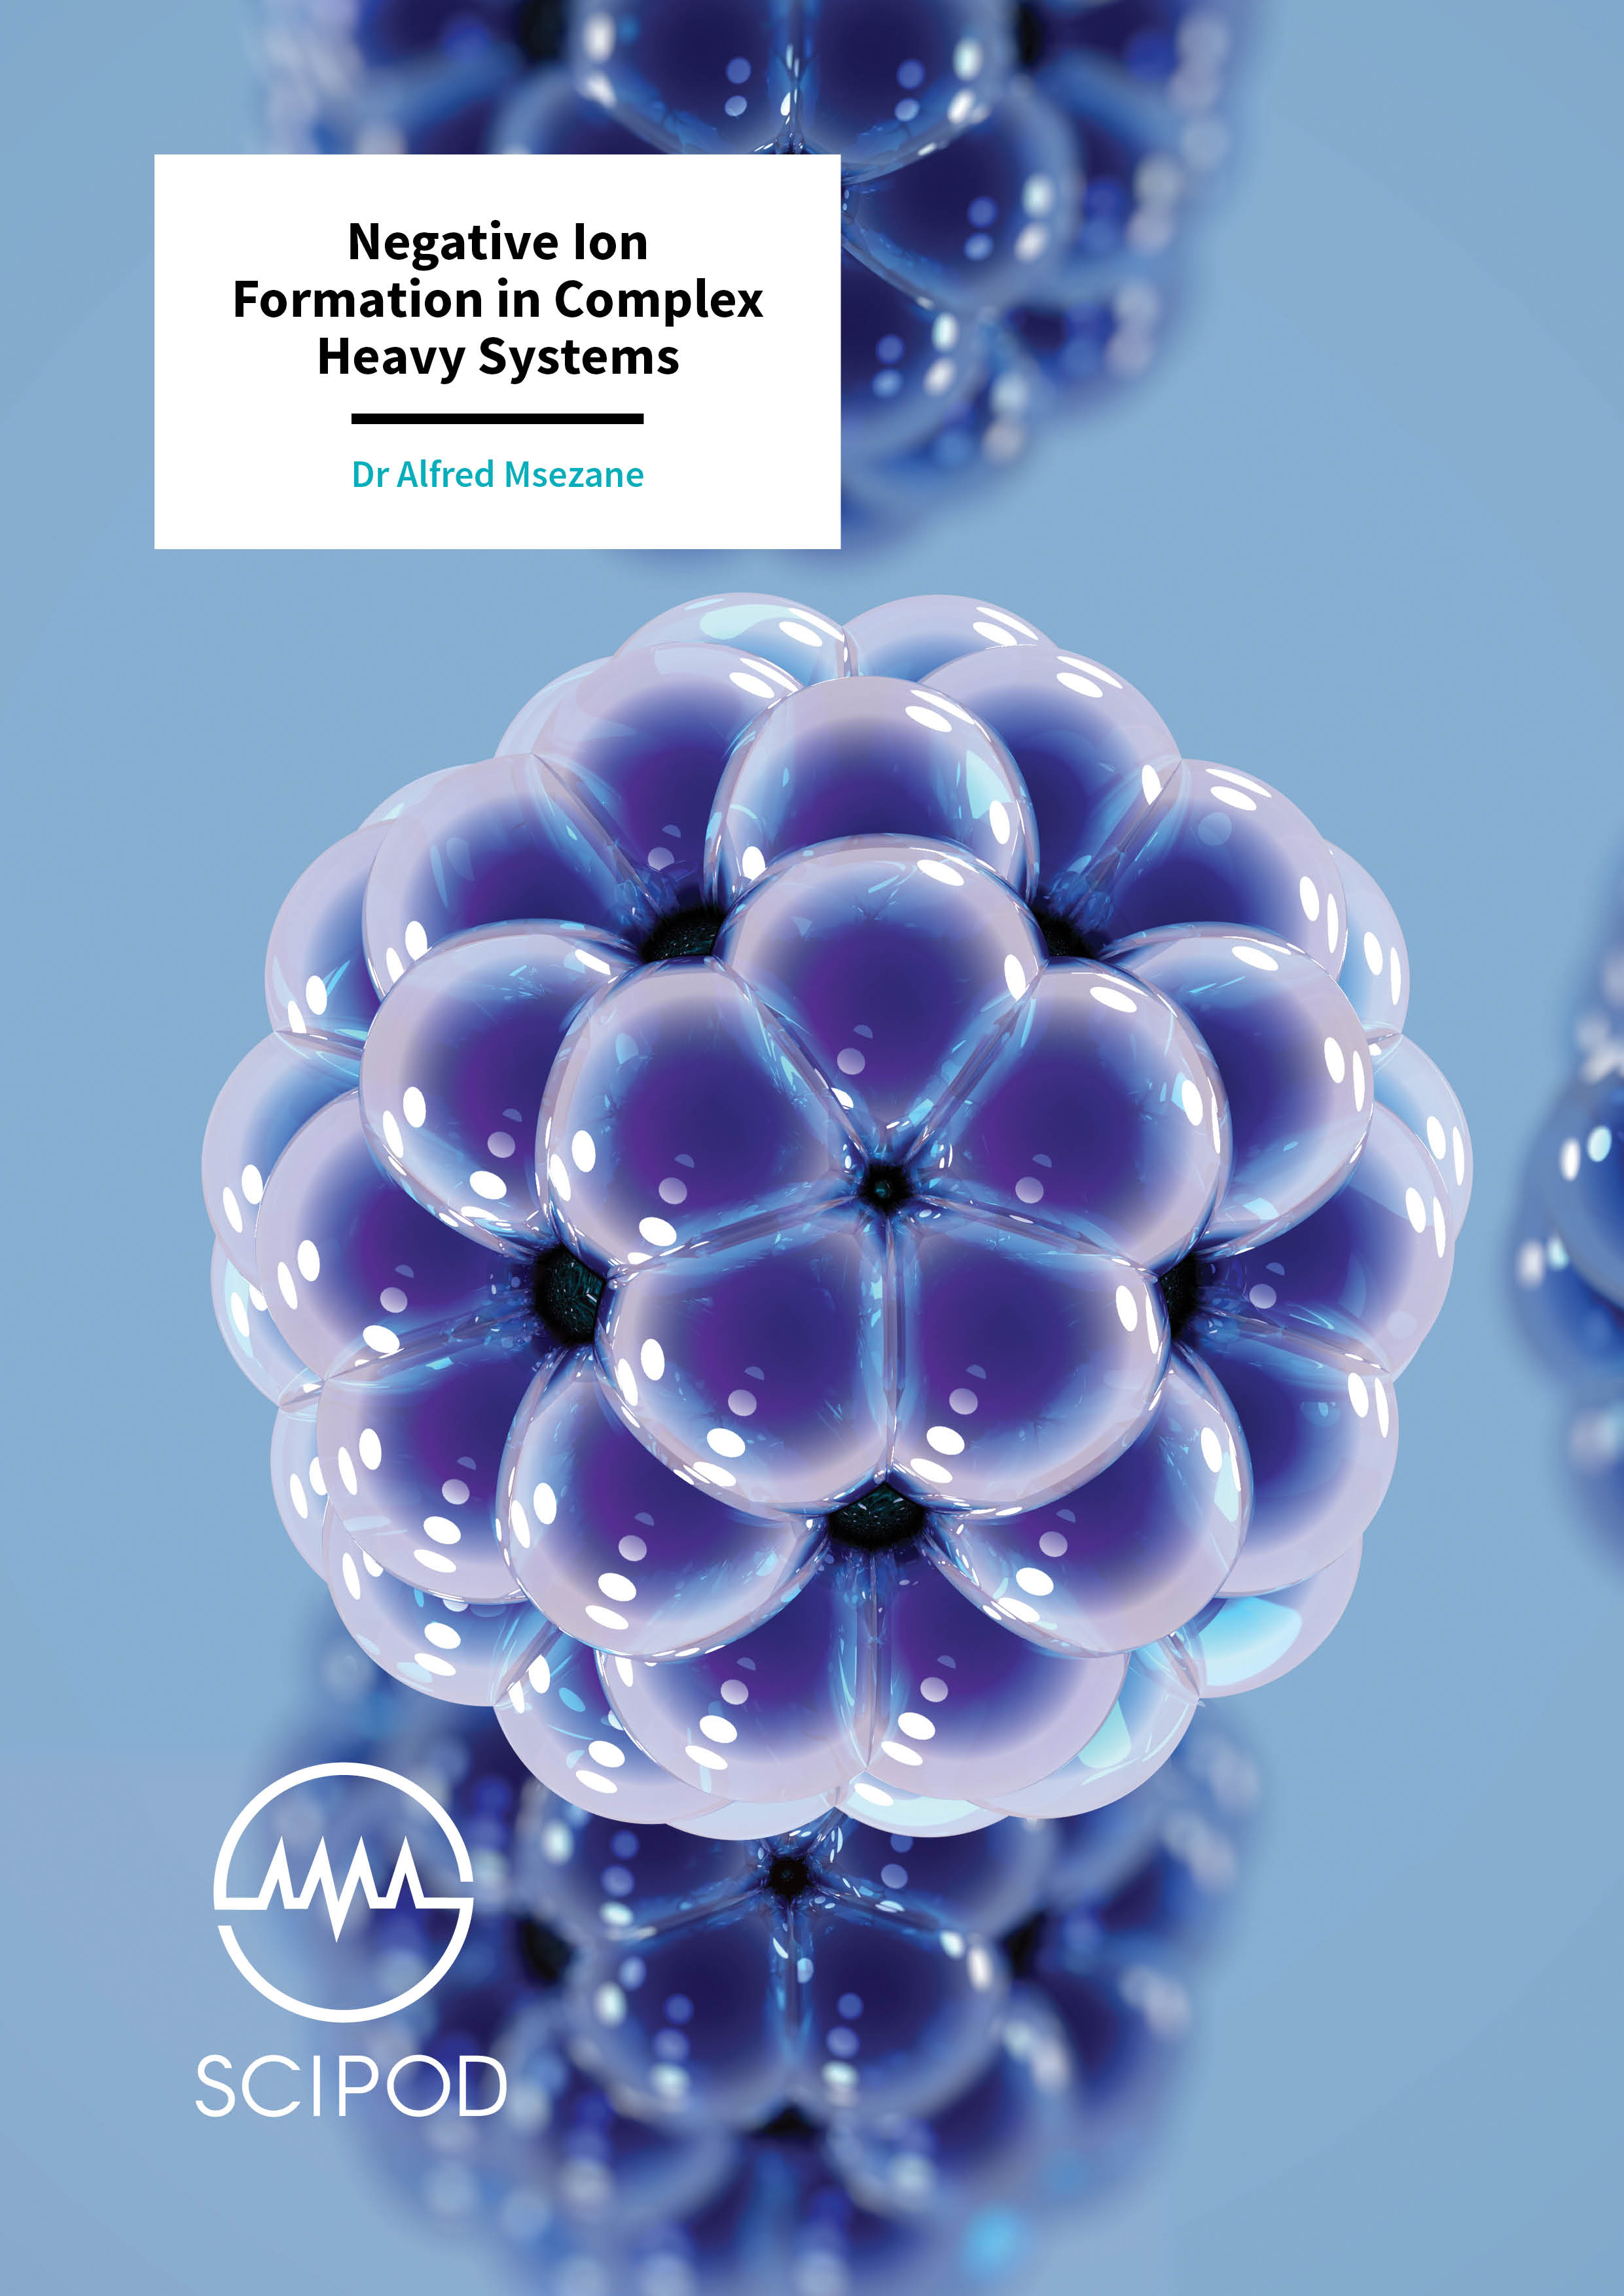 Negative Ion Formation in Complex Heavy Systems – Dr Alfred Msezane, Clark Atlanta University